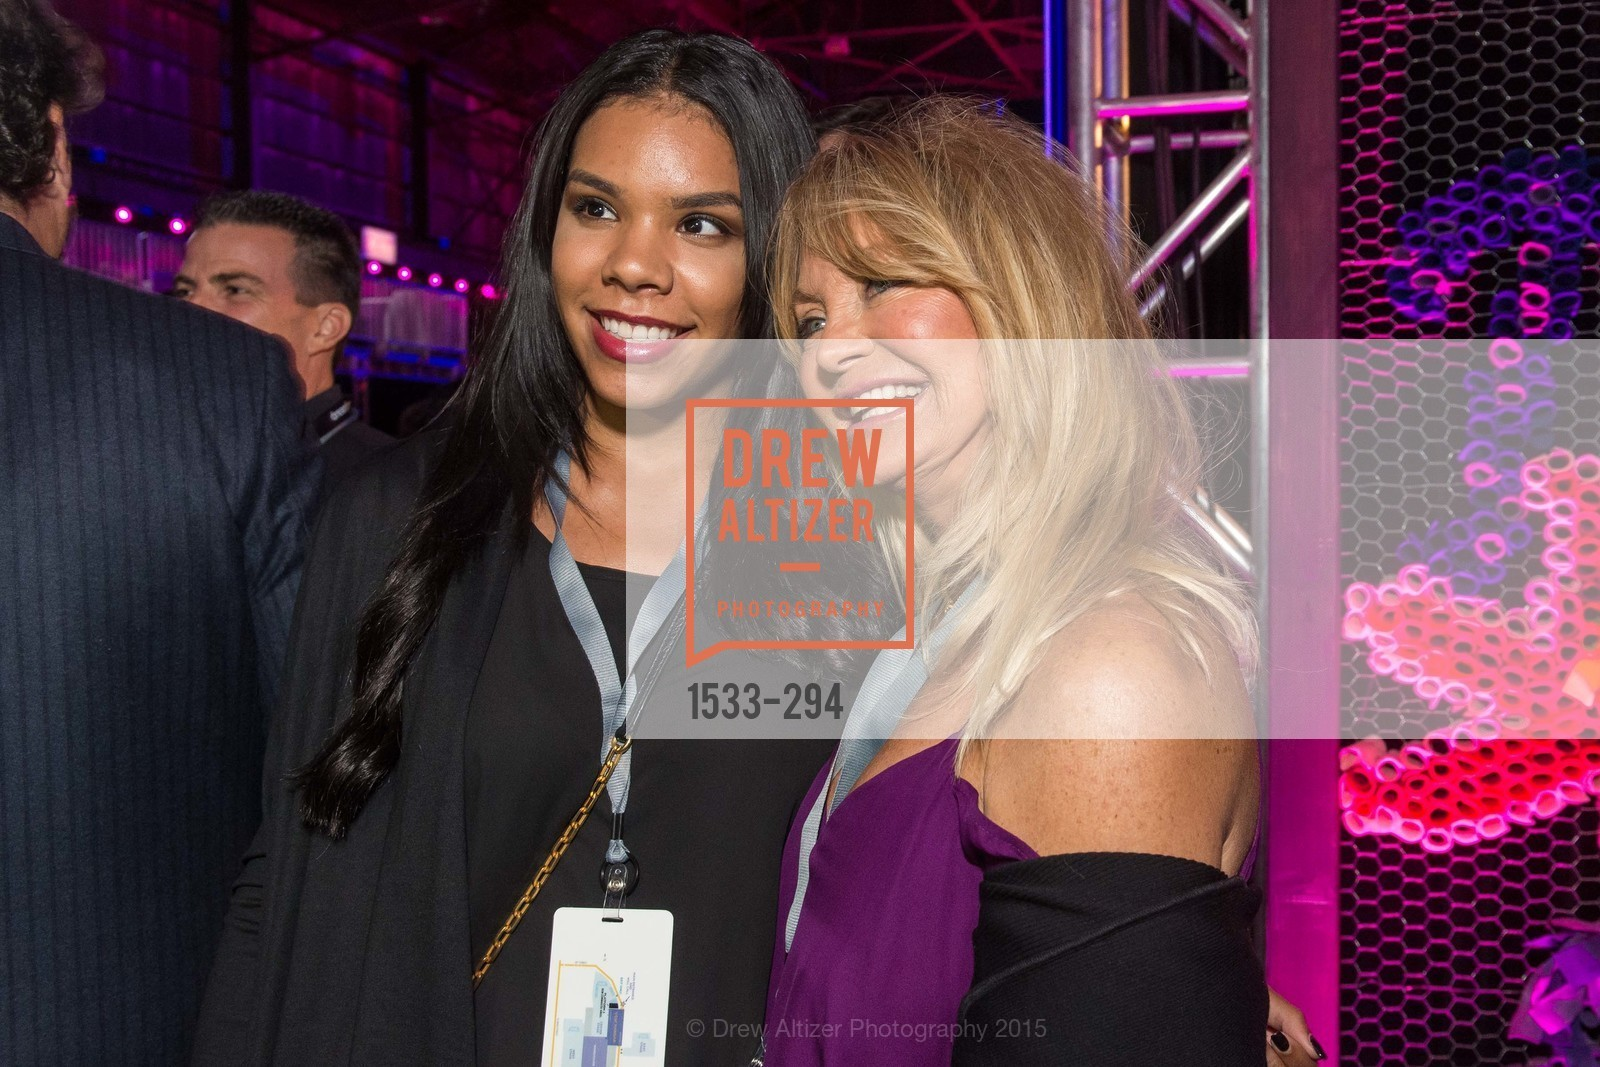 Shikari Bond, Goldie Hawn, The Concert For UCSF Benioff Children's Hospital, Pier 70, September 17th, 2015,Drew Altizer, Drew Altizer Photography, full-service agency, private events, San Francisco photographer, photographer california